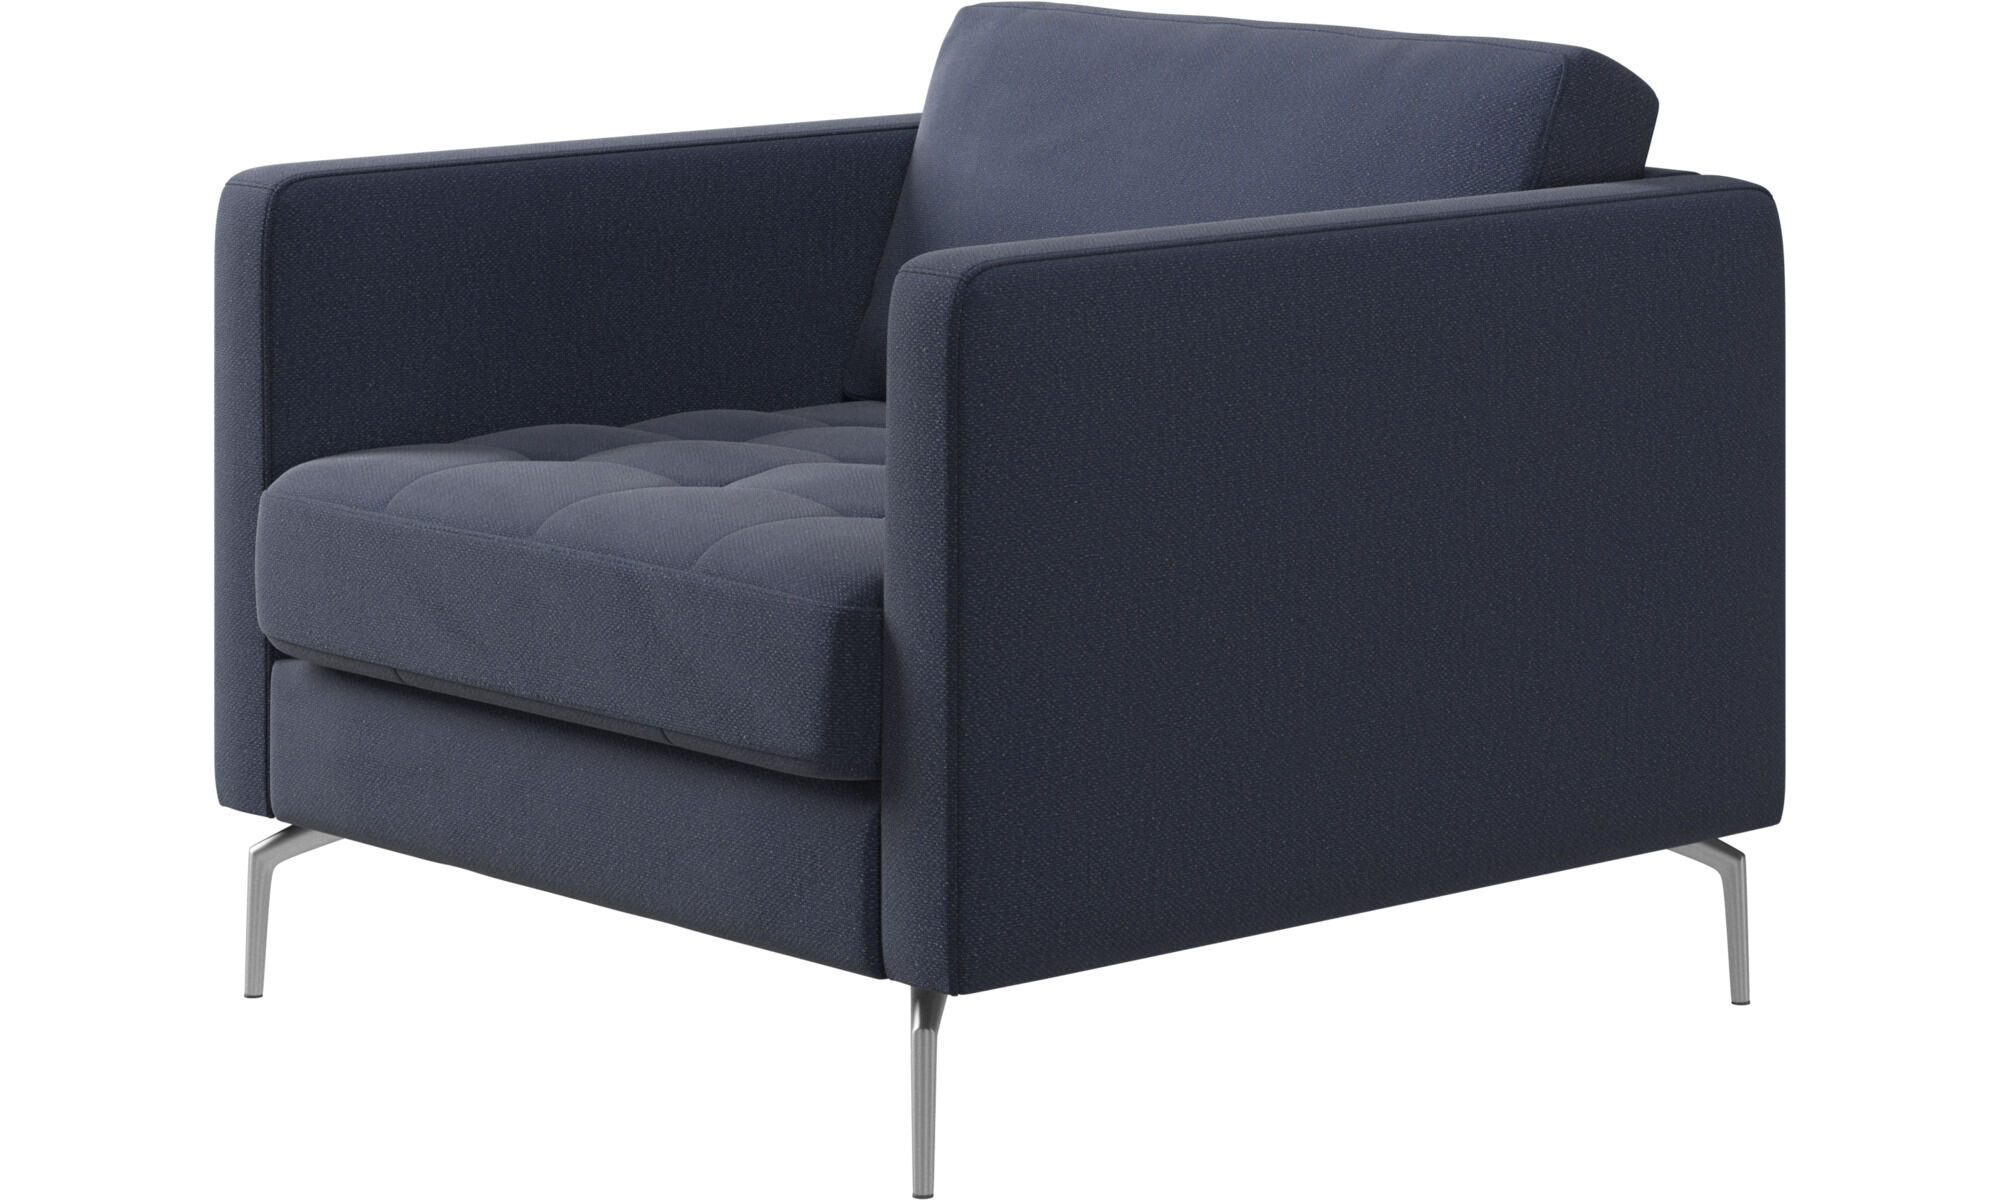 Armchairs   Osaka Chair, Tufted Seat   Blue   Fabric ...